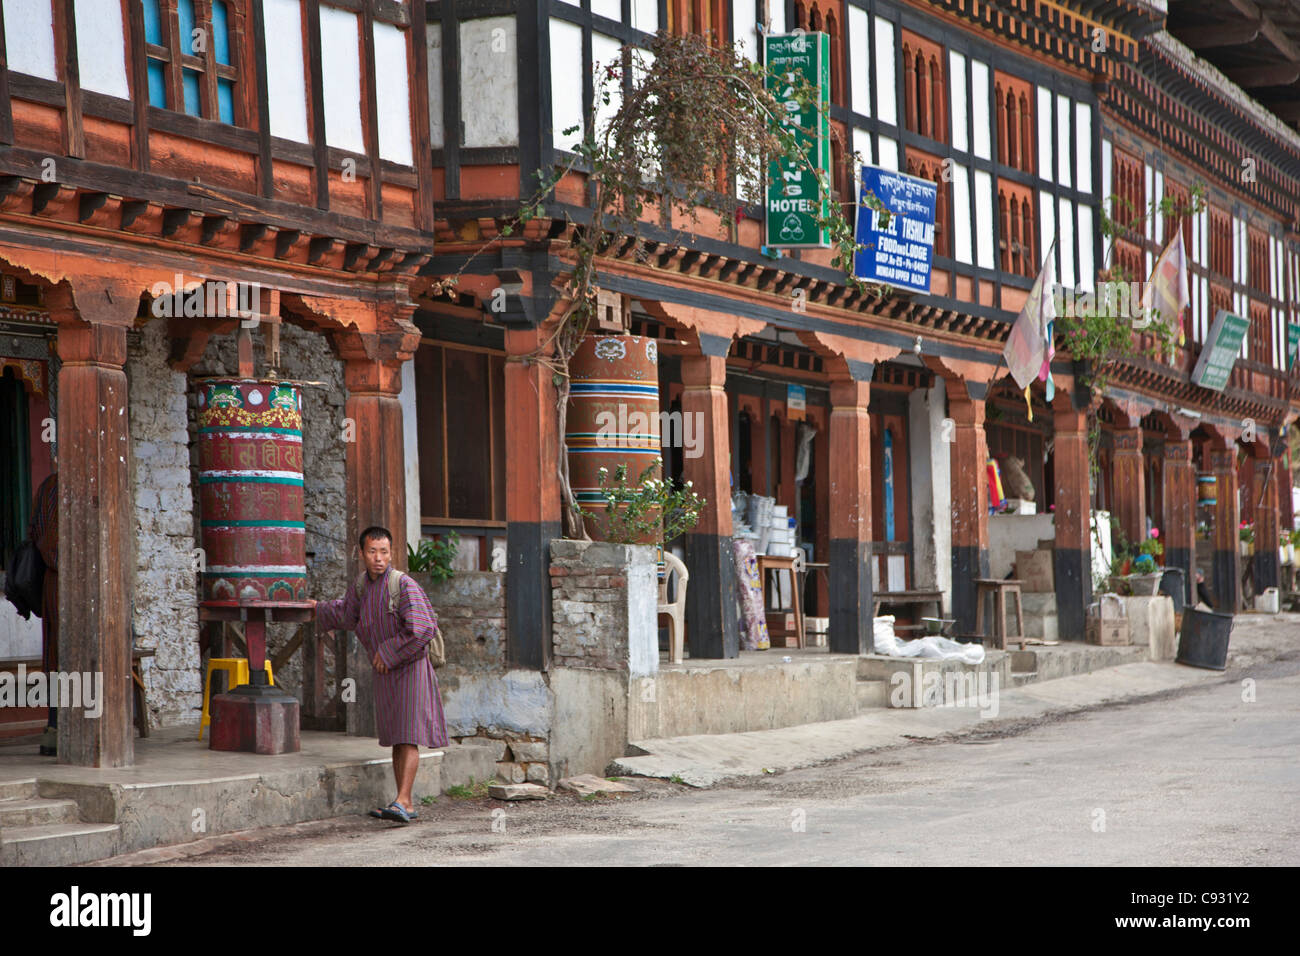 The main street in Mongar reflecting shops and local hotels built in the traditional Bhutanese architectural style. - Stock Image